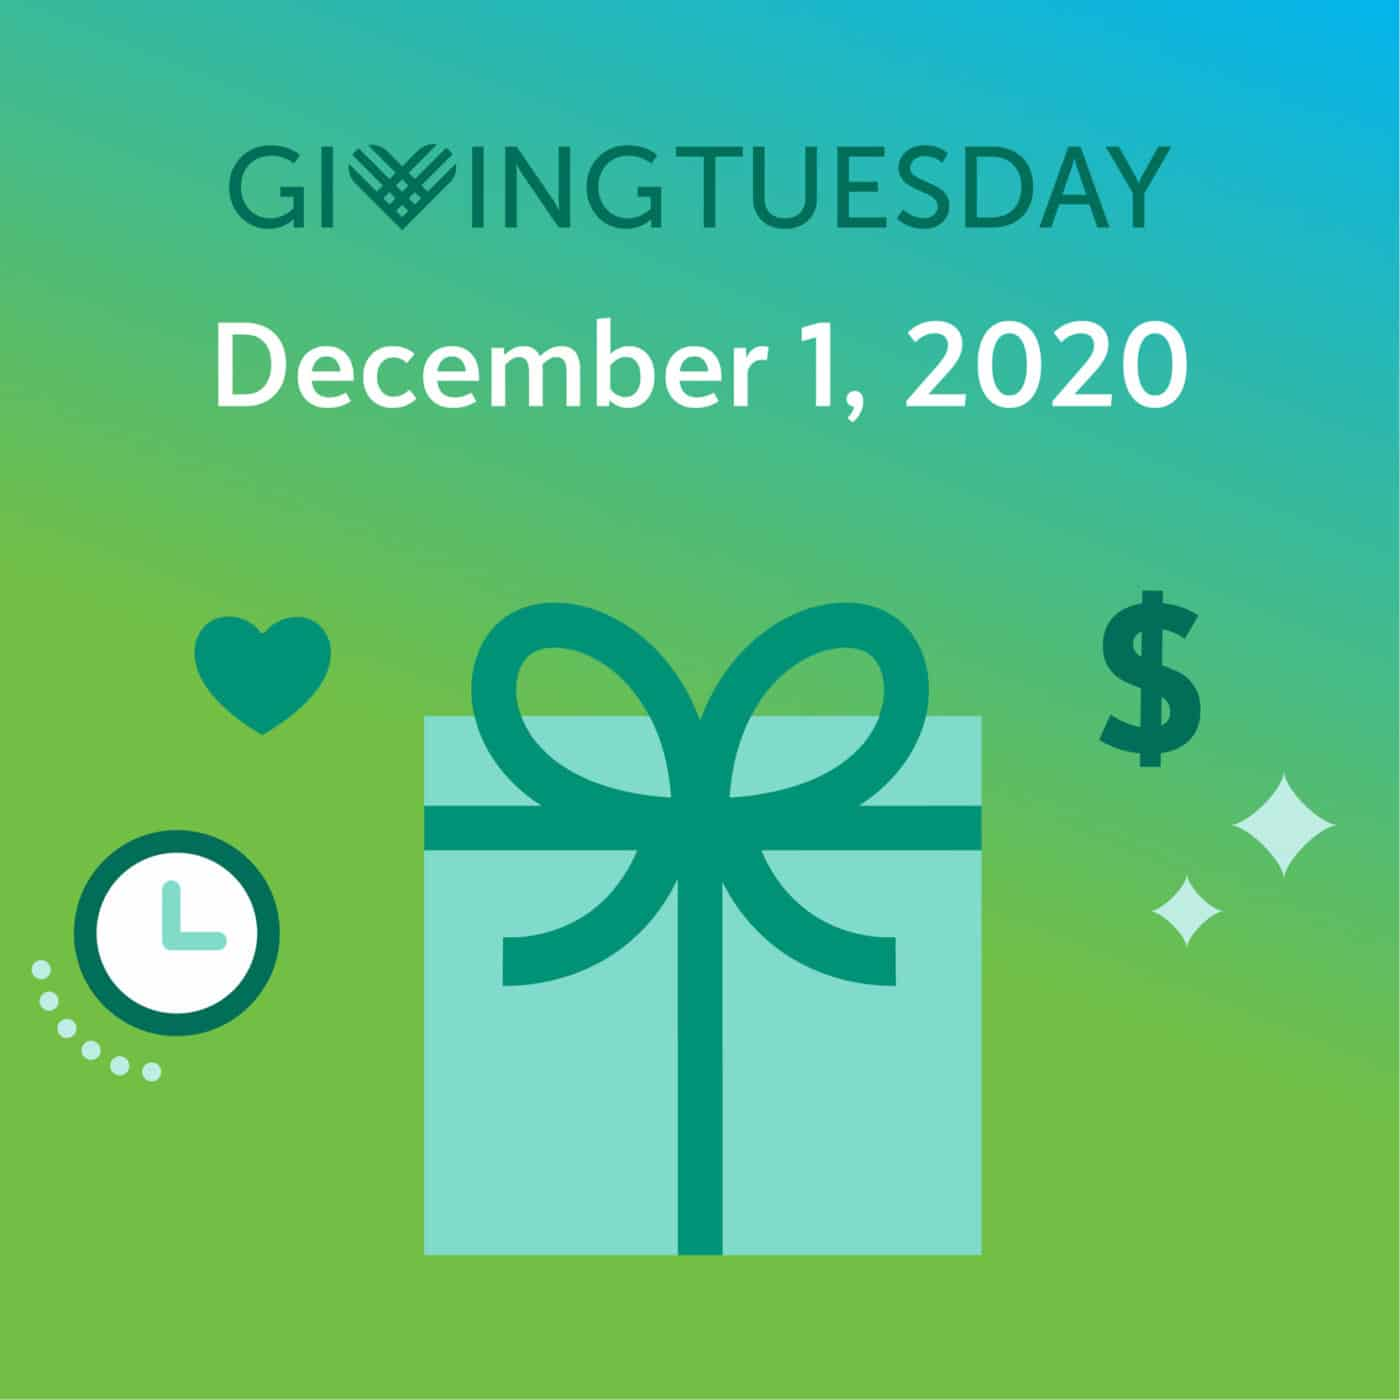 Giving Tuesday 2020 Event Image